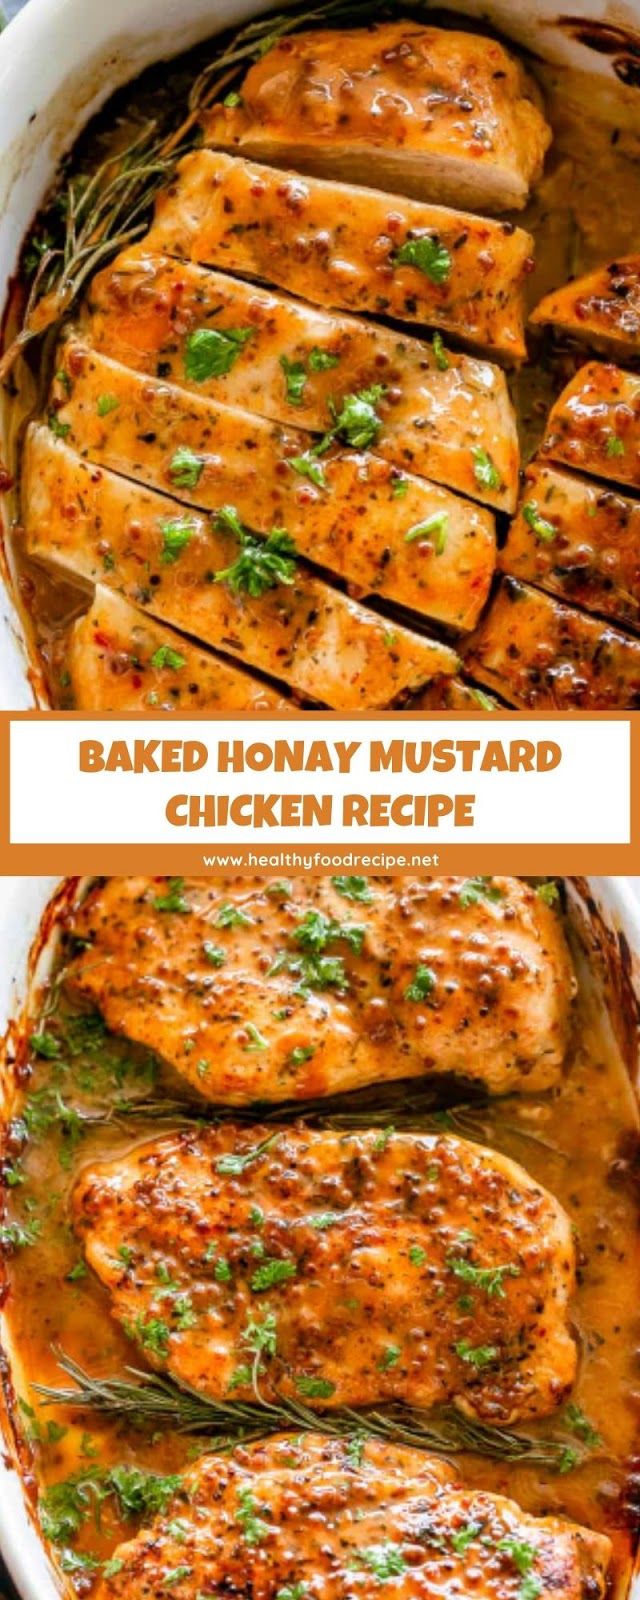 BAKED HONAY MUSTARD CHICKEN RECIPE